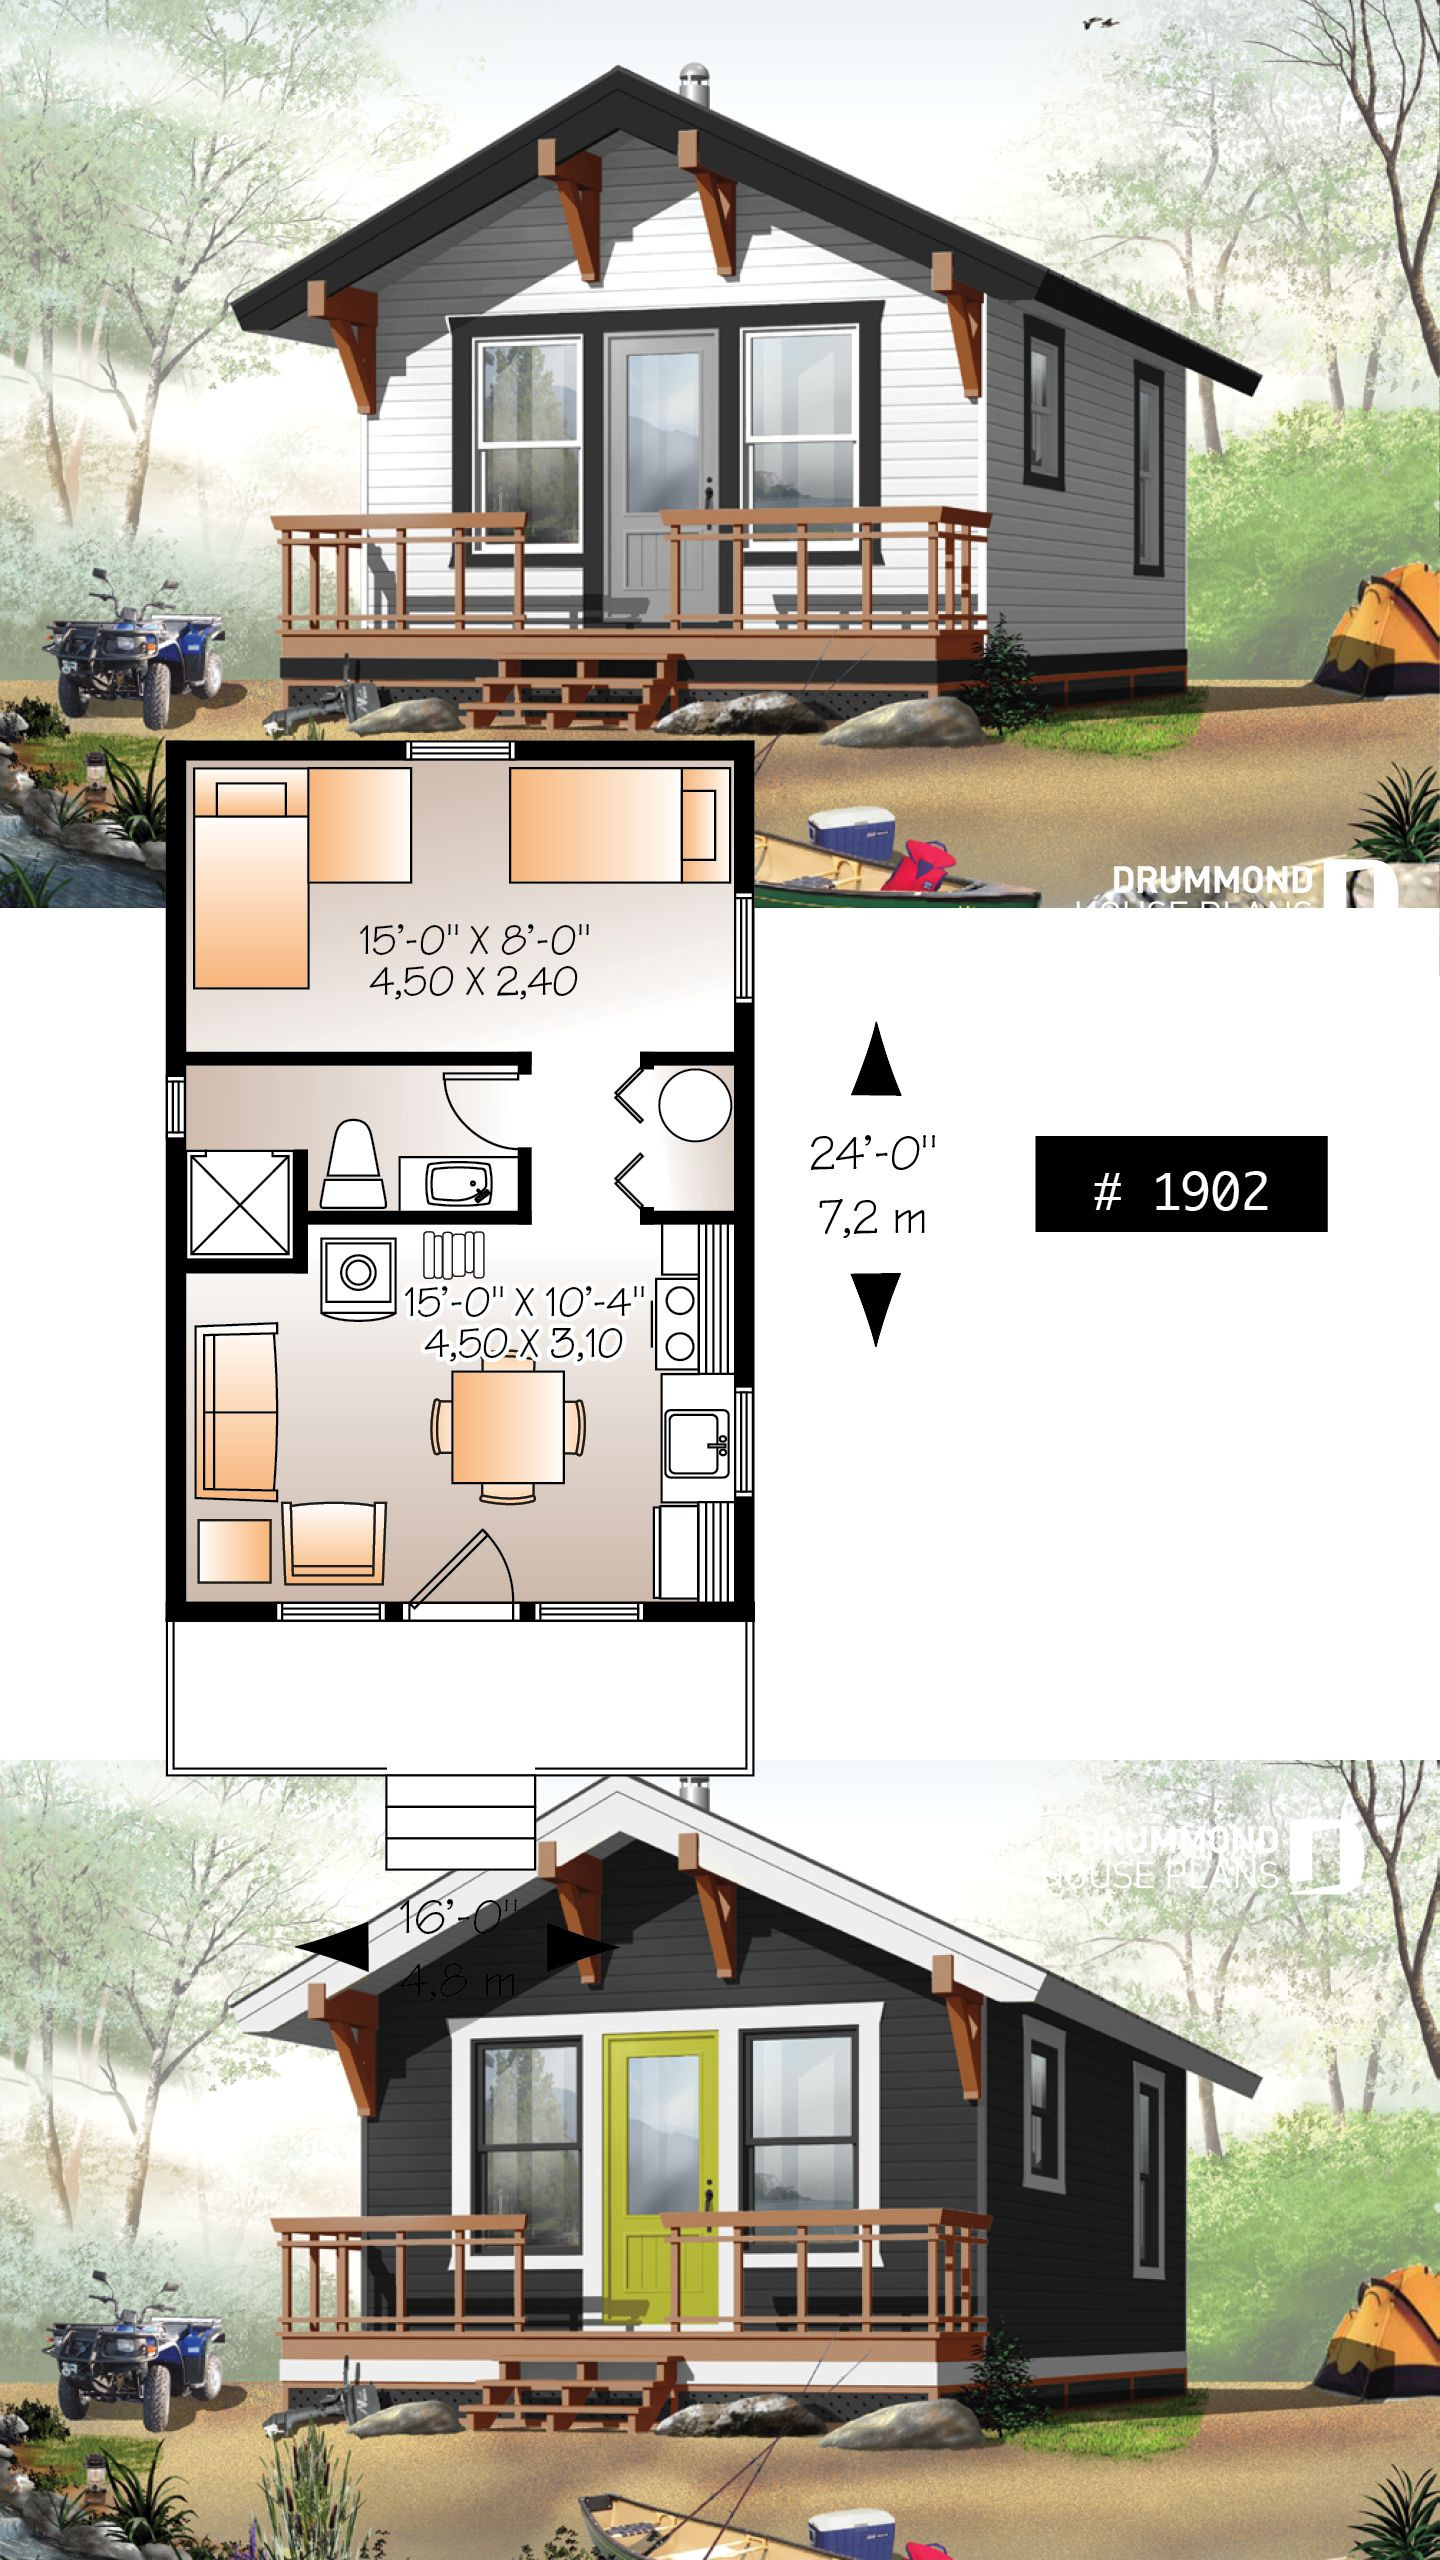 House Plans for Cabins and Small Houses Best Of House Plan Morning Breeze No 1902